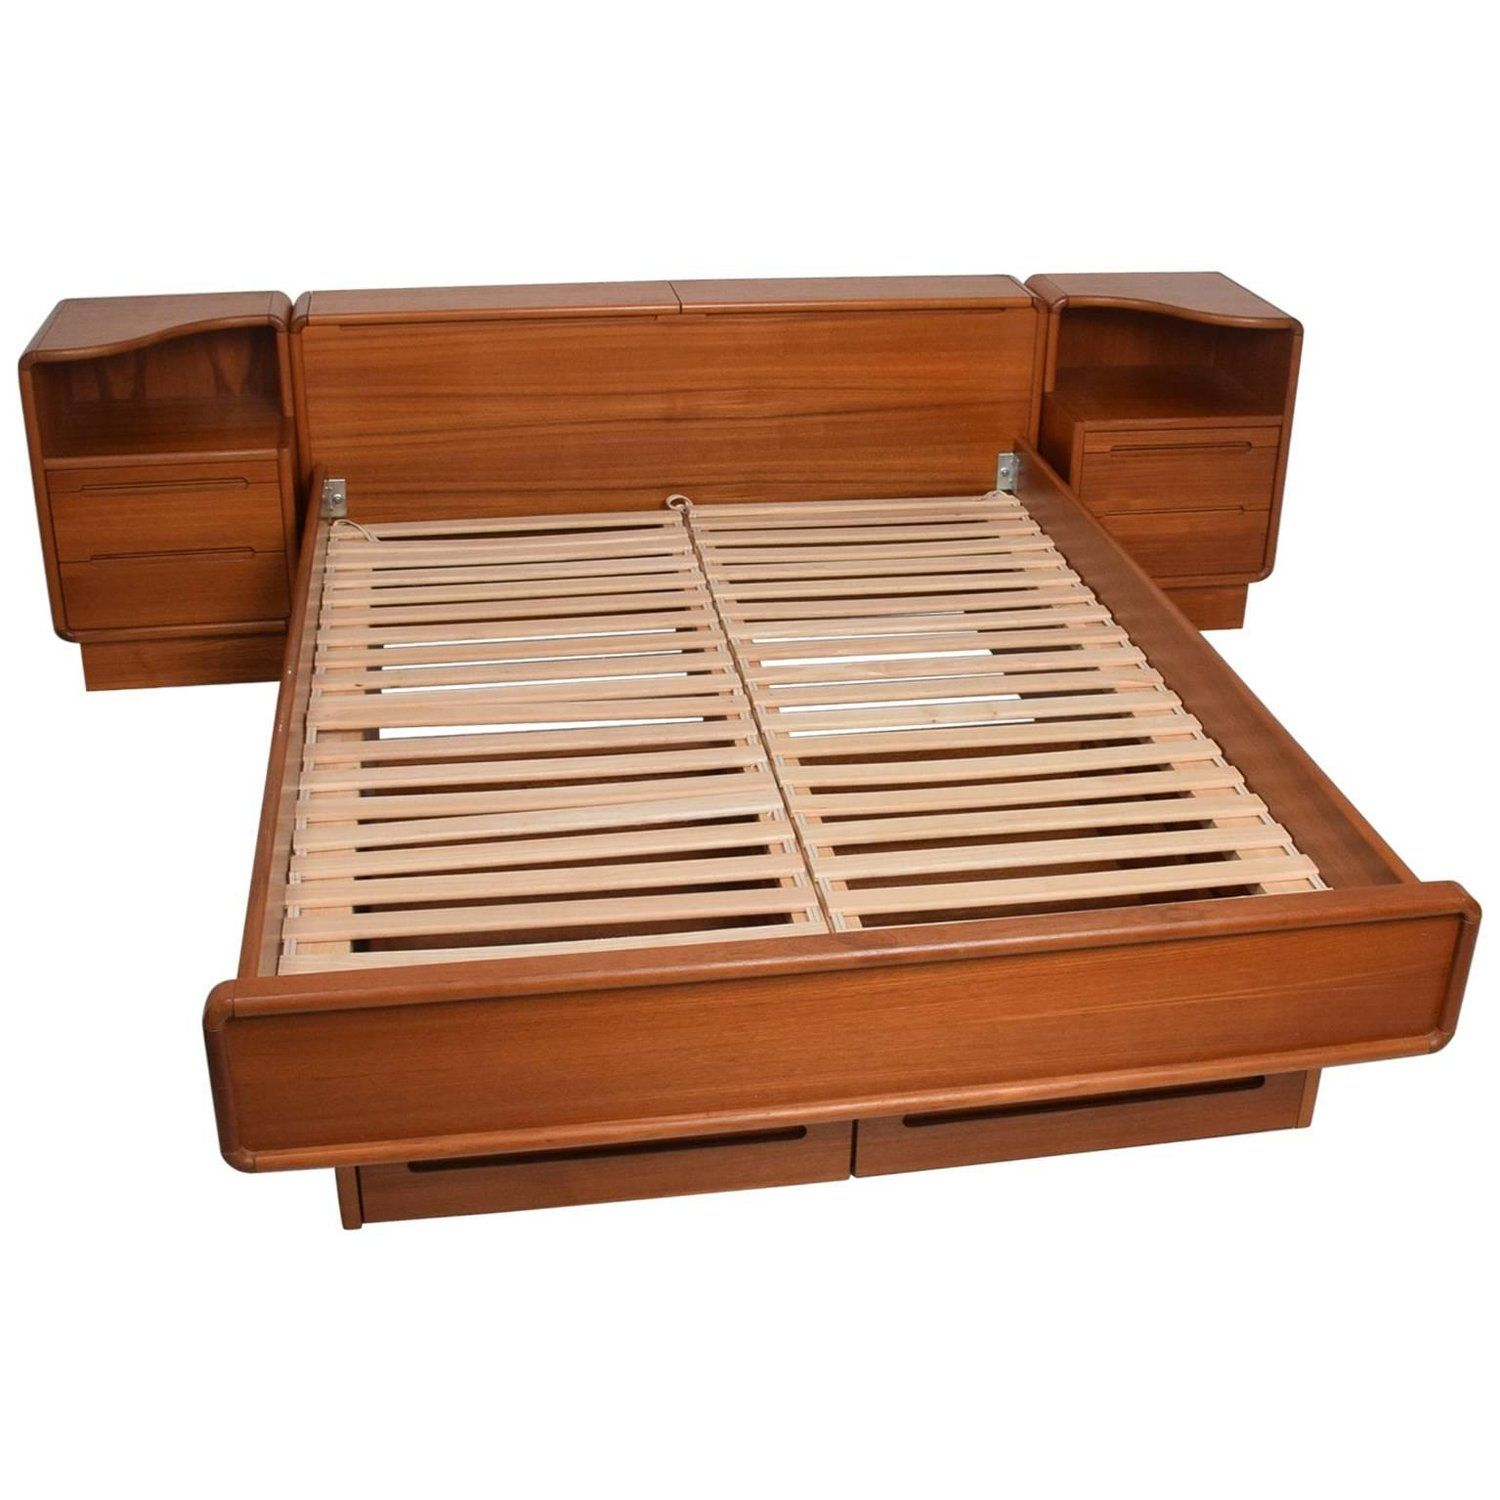 Danish Modern Teak Platform Bed QueenSize with